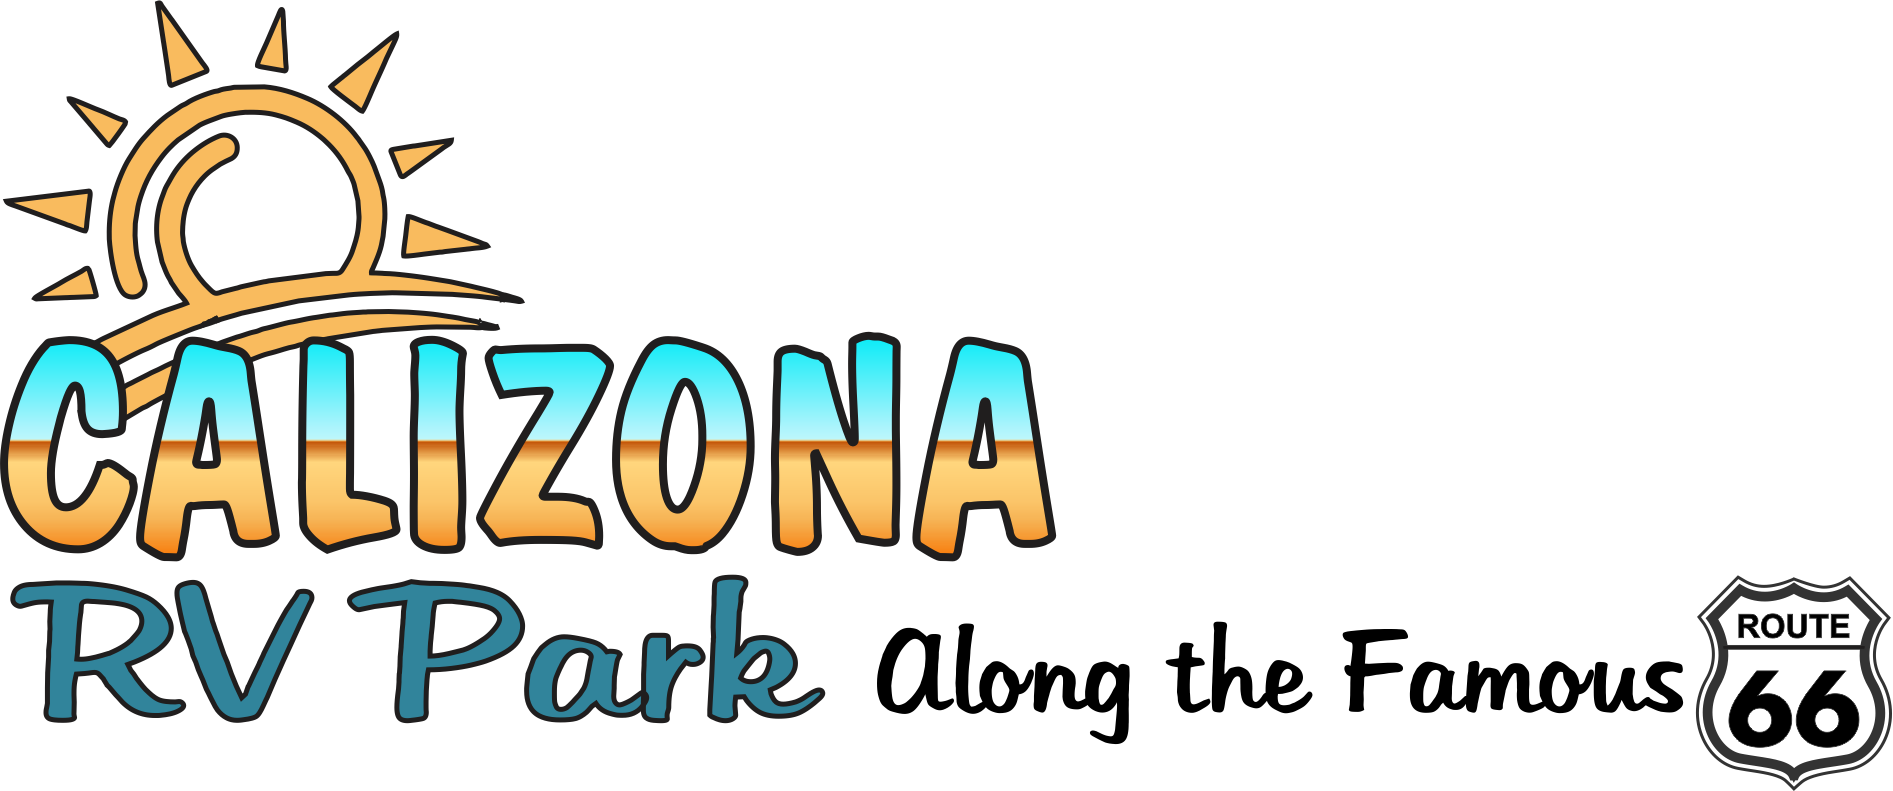 Calizona RV Park logo